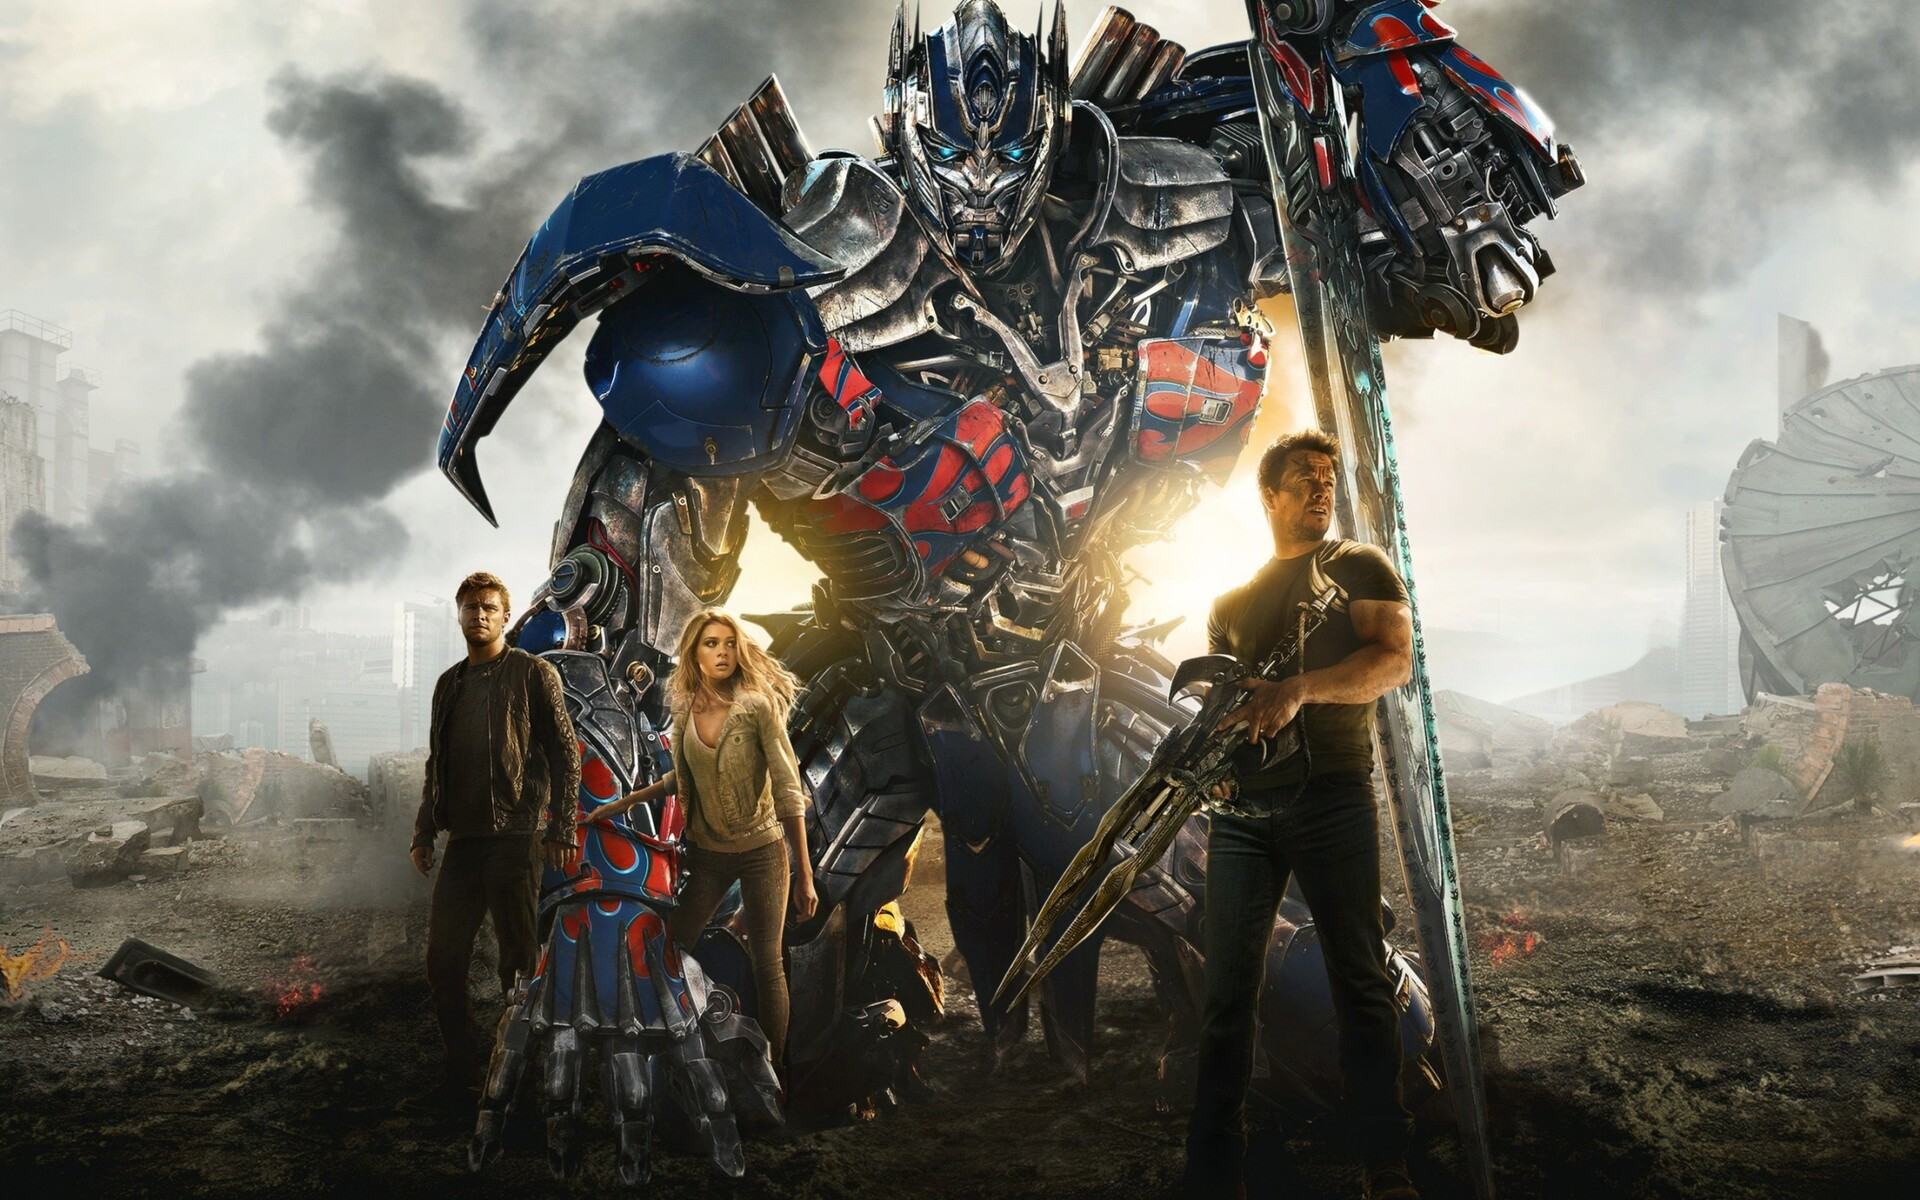 Transformers Age Of Extinction Full Movie In Hindi: 1920x1200 Transformers 4 Age Of Extinction Movie 1080P